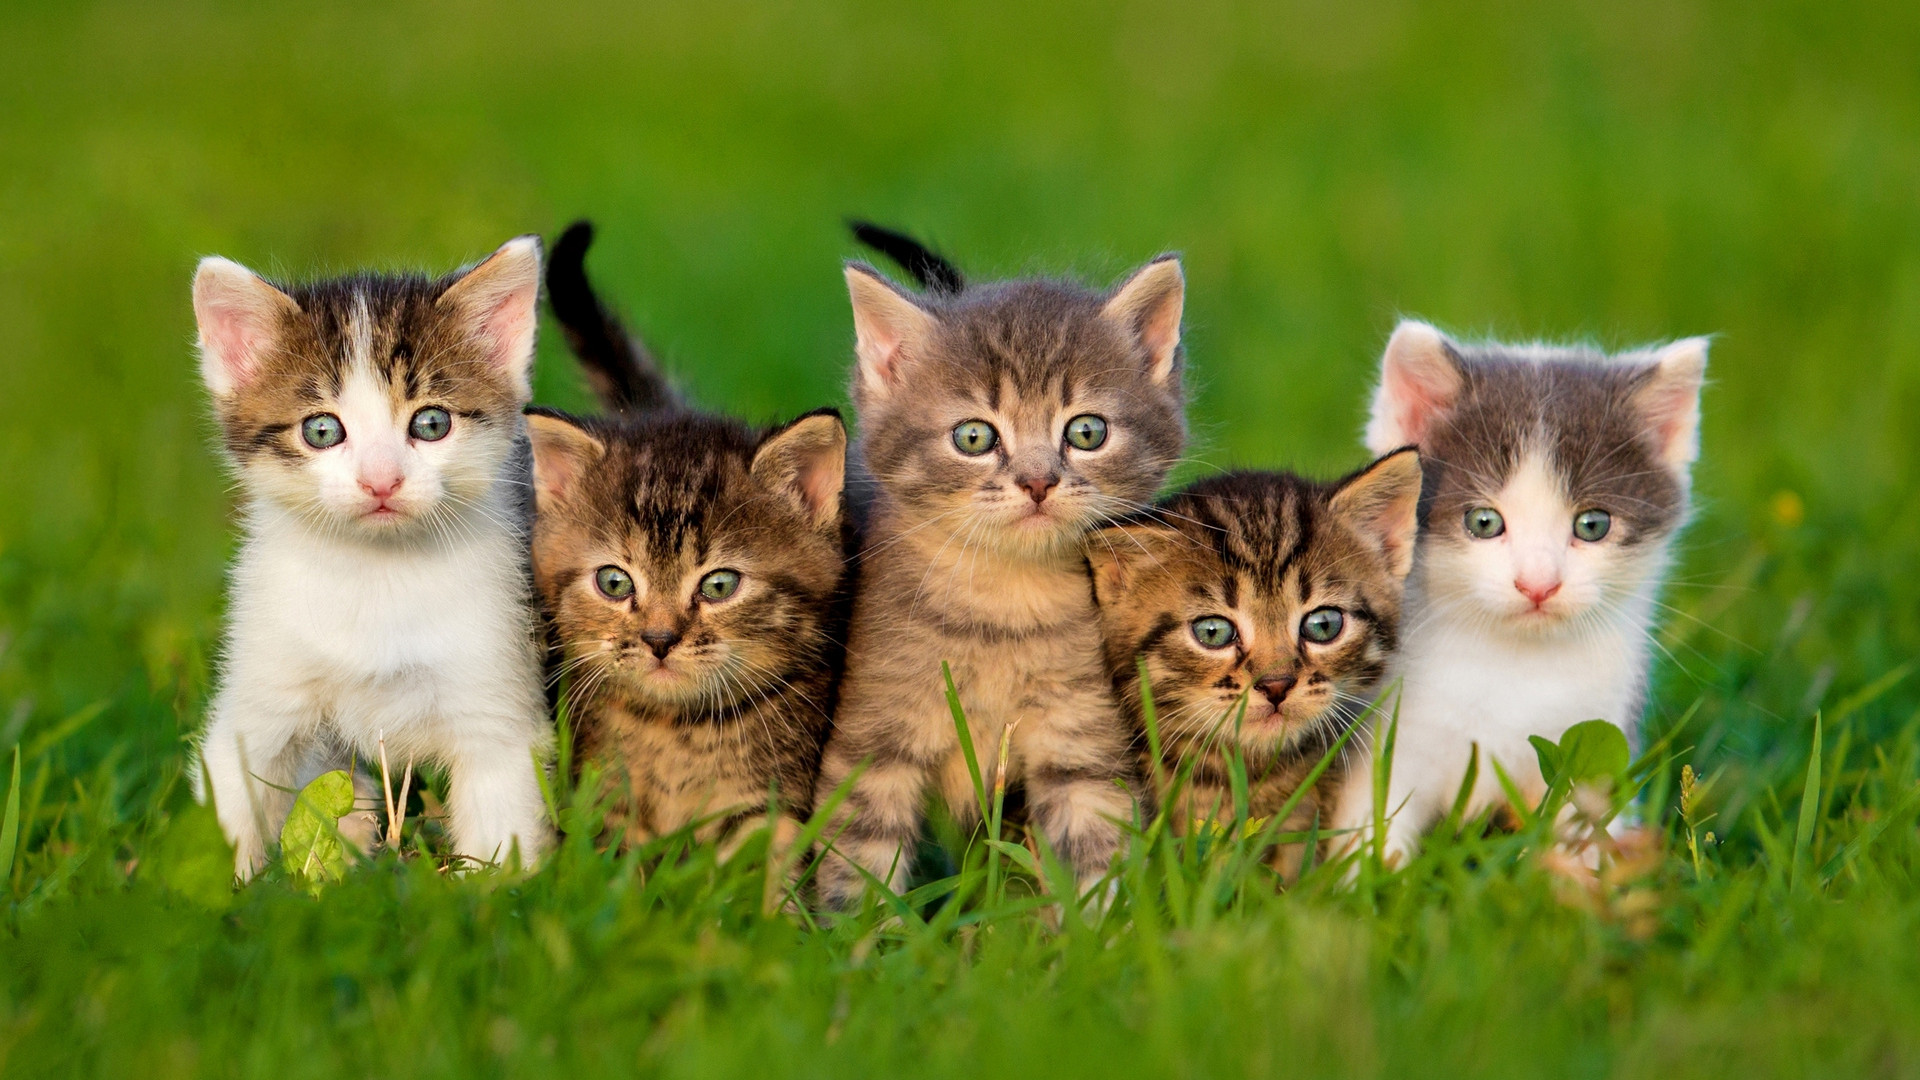 Cat Grass Kittens